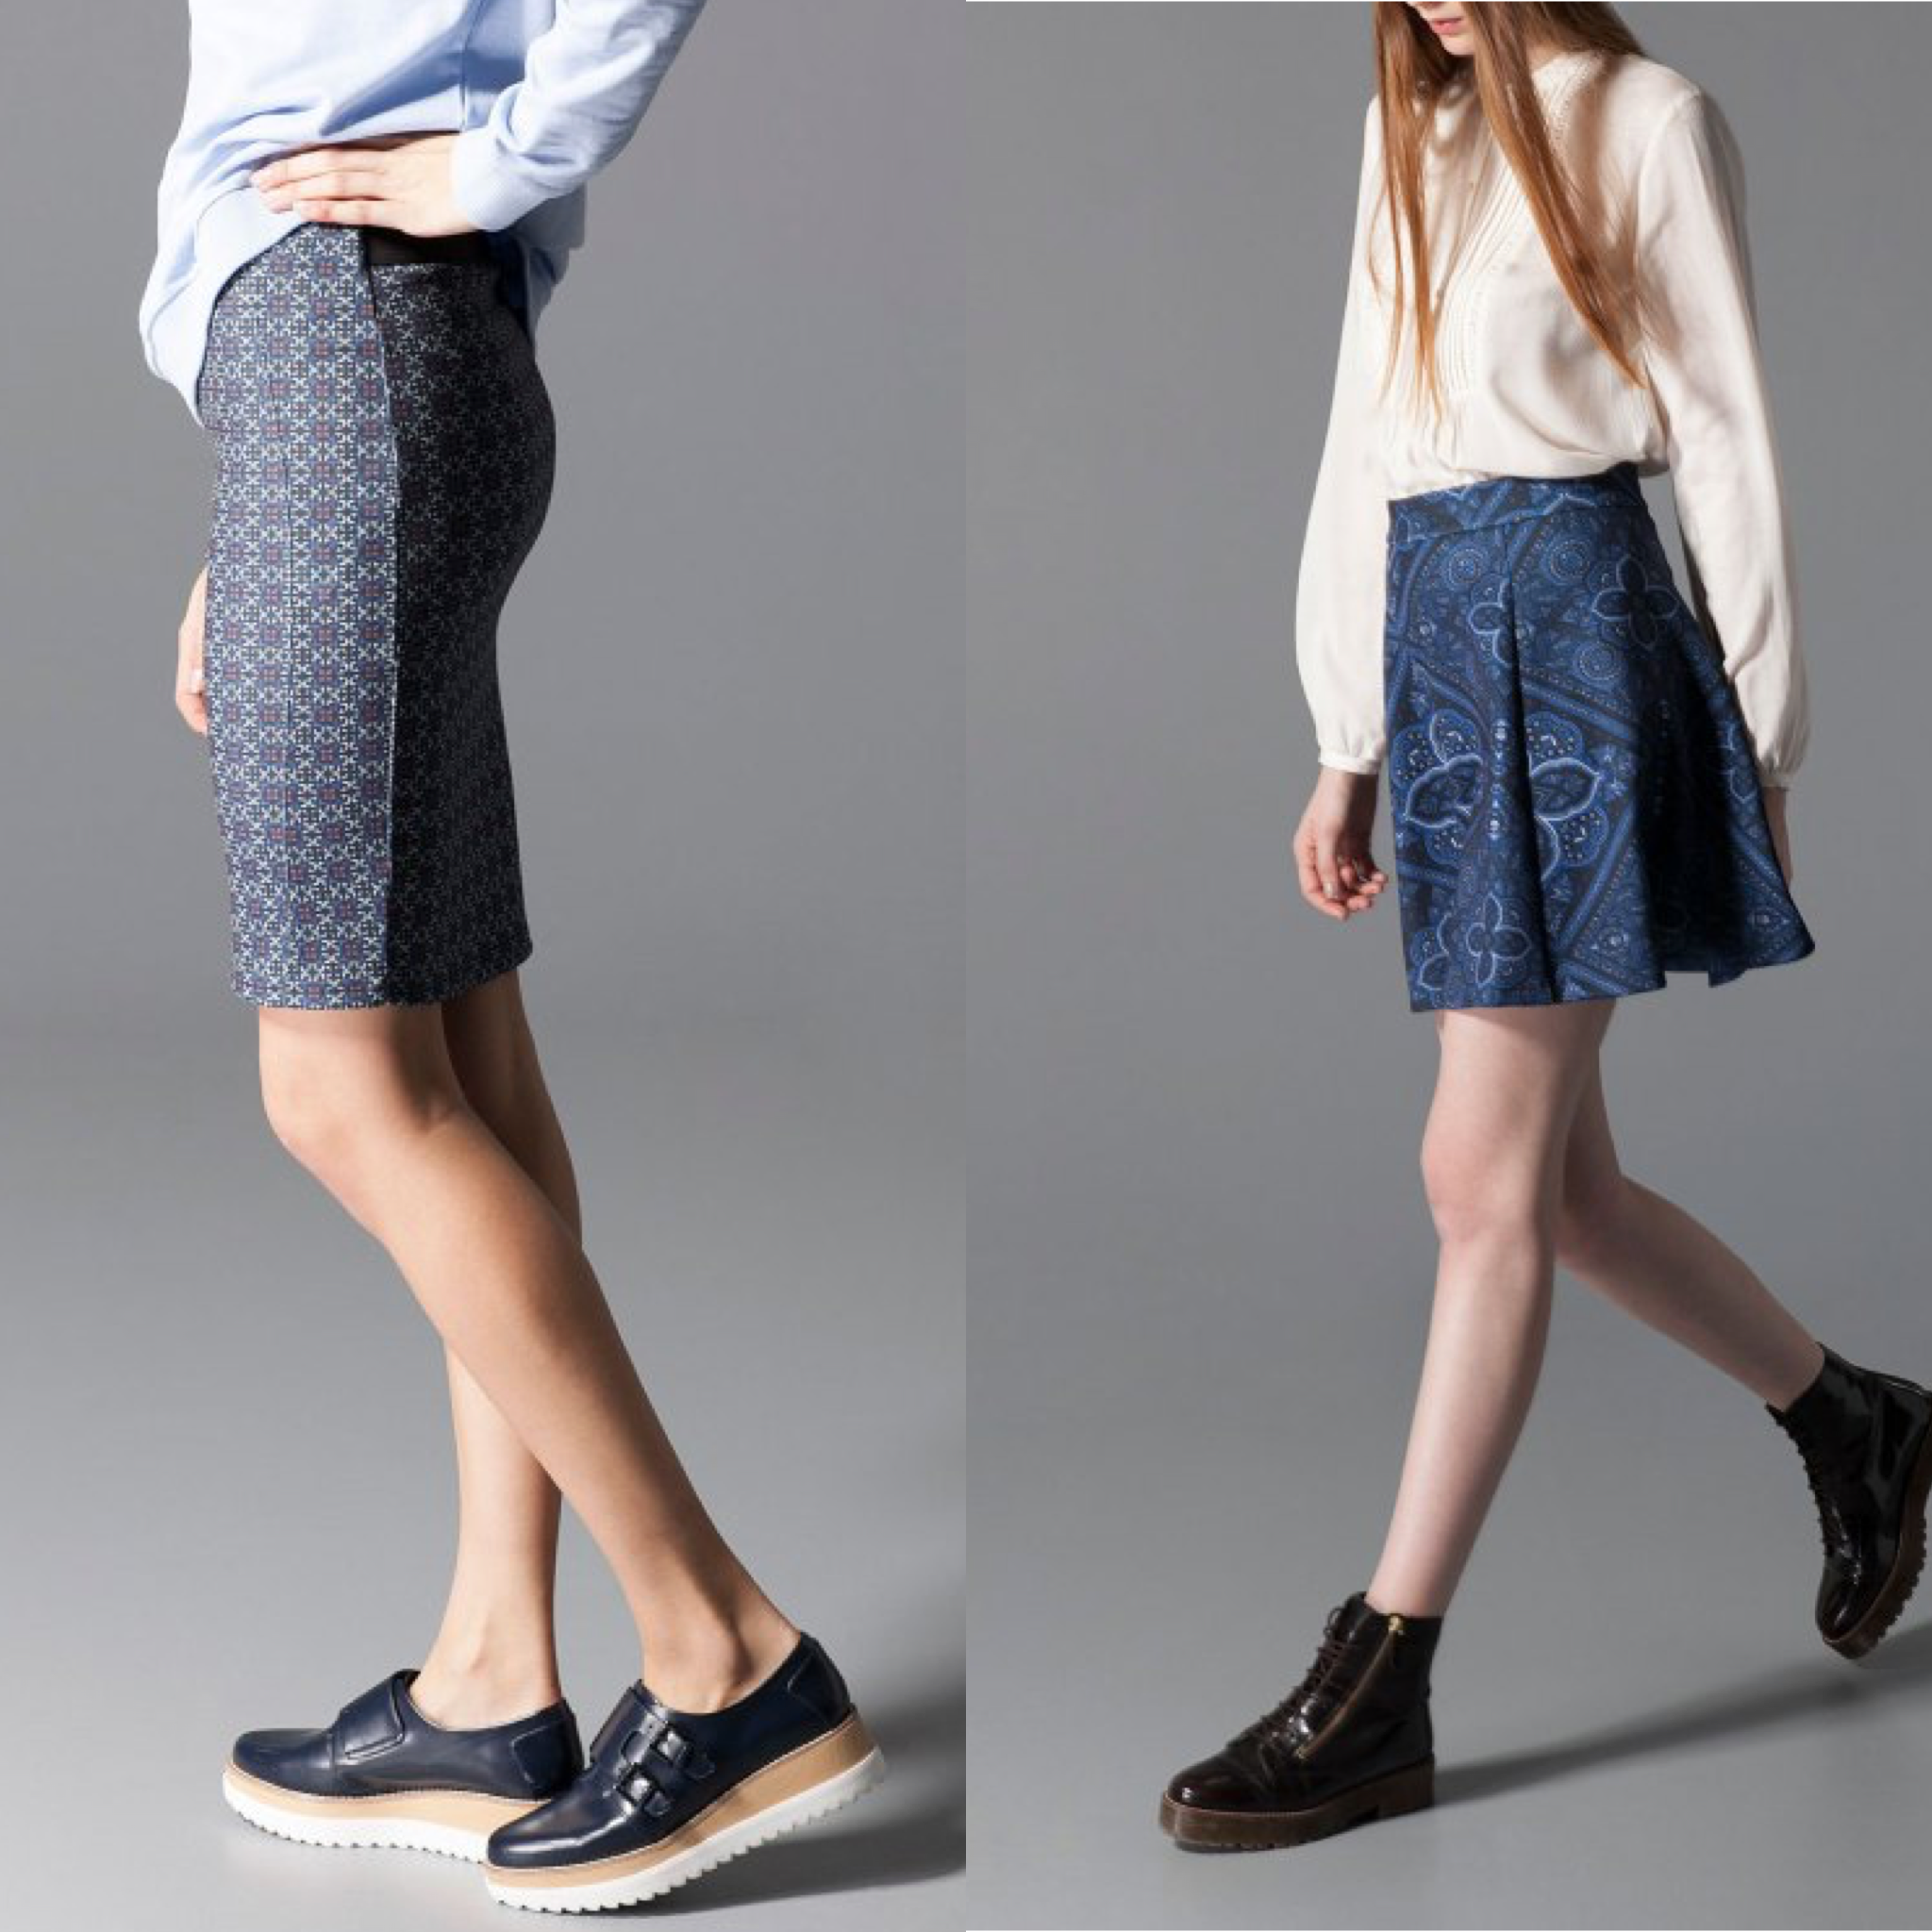 Stradivarius Print Tube Skirt and Stradivarius Skater Skirt